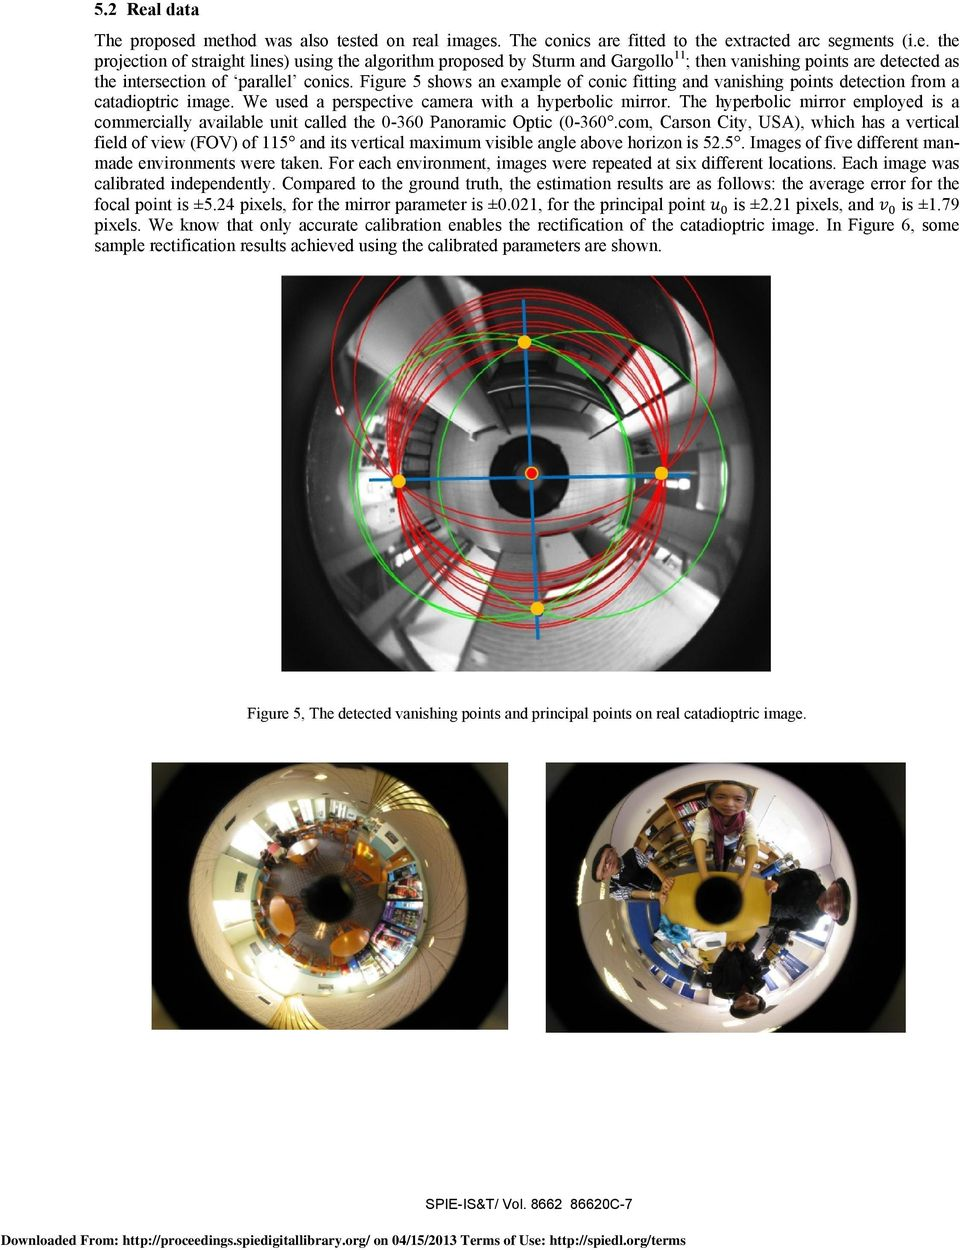 The hyperbolic mirror employed is a commercially available unit called the 0-360 Panoramic Optic (0-360.